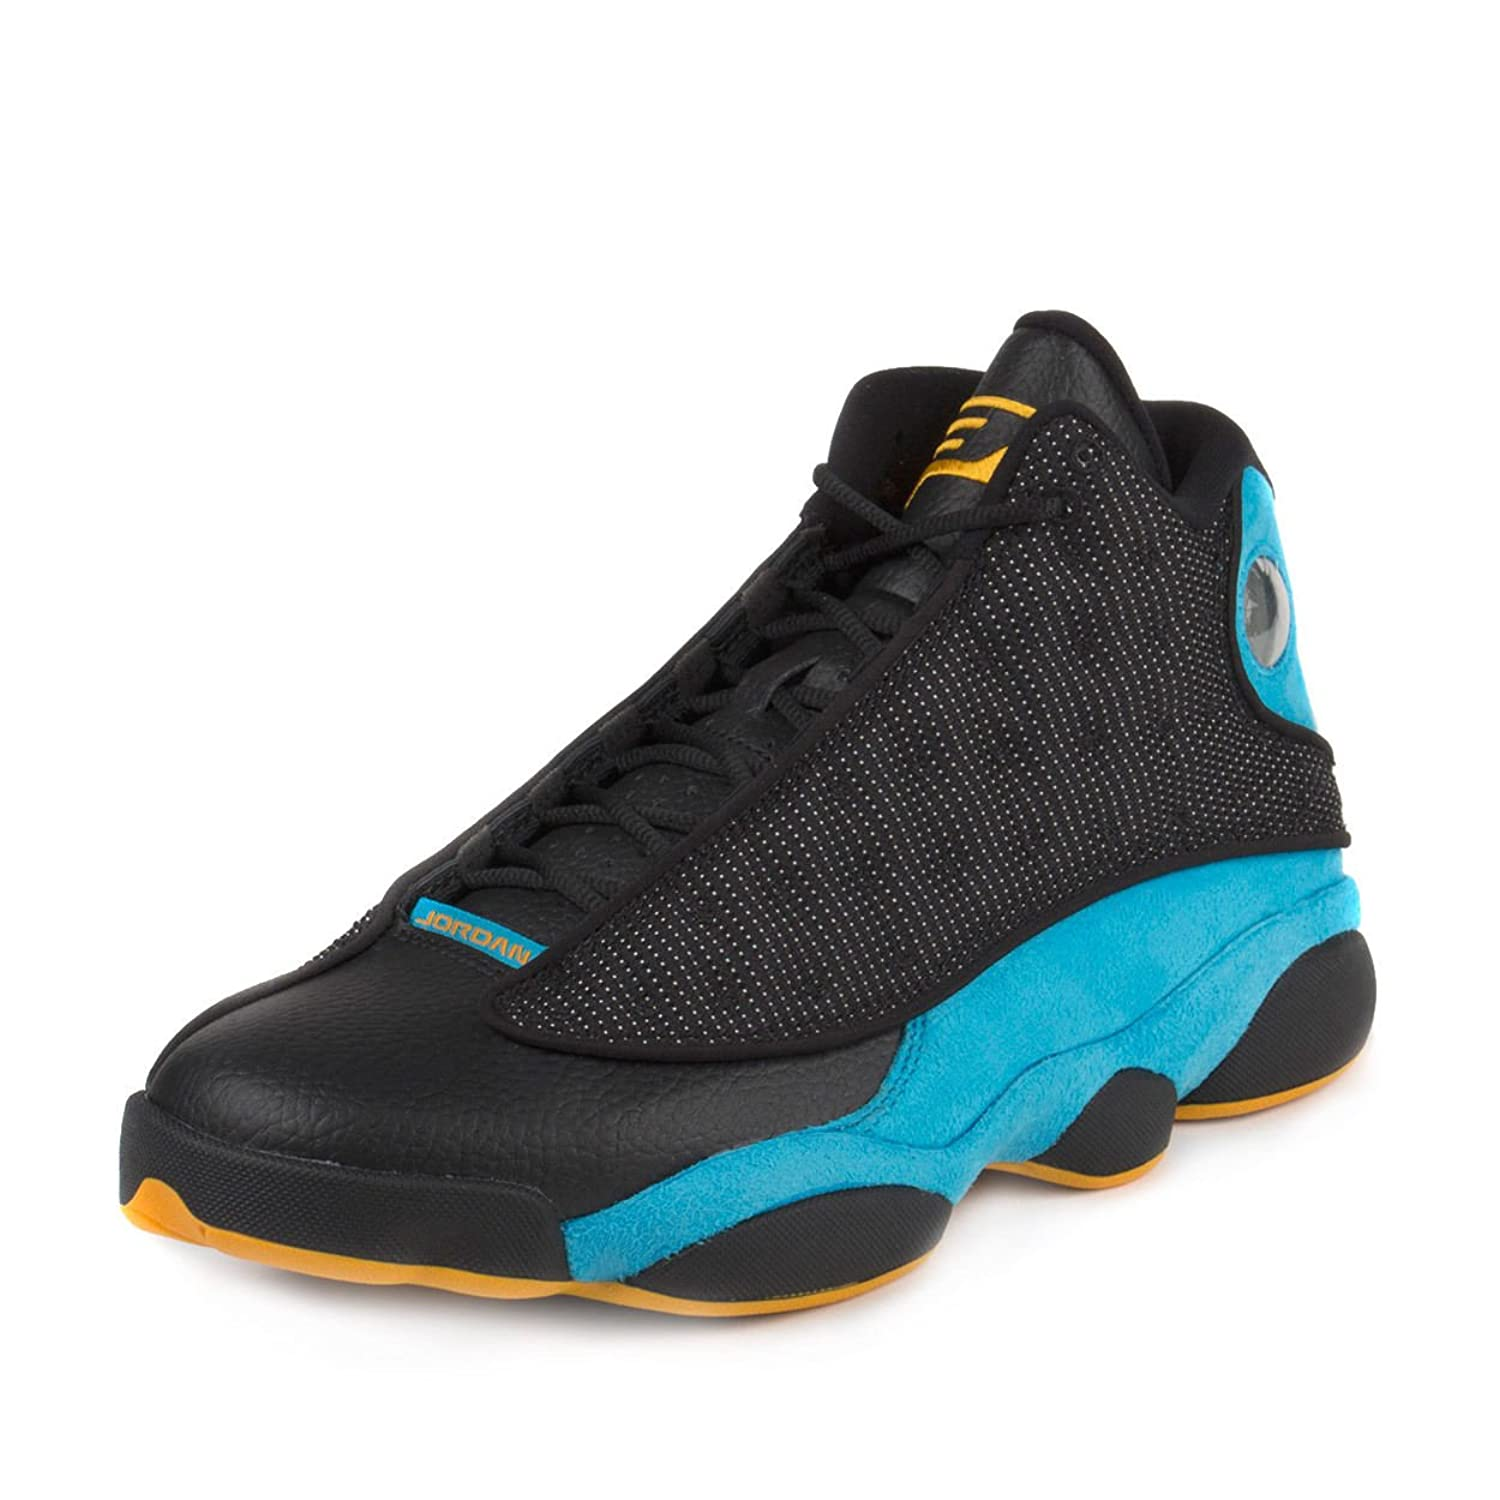 ナイキ(NIKE) Air Jordan 13 XIII CP3 Chris Paul PE メンズ 823902-015 [並行輸入品] B01I11VE4K